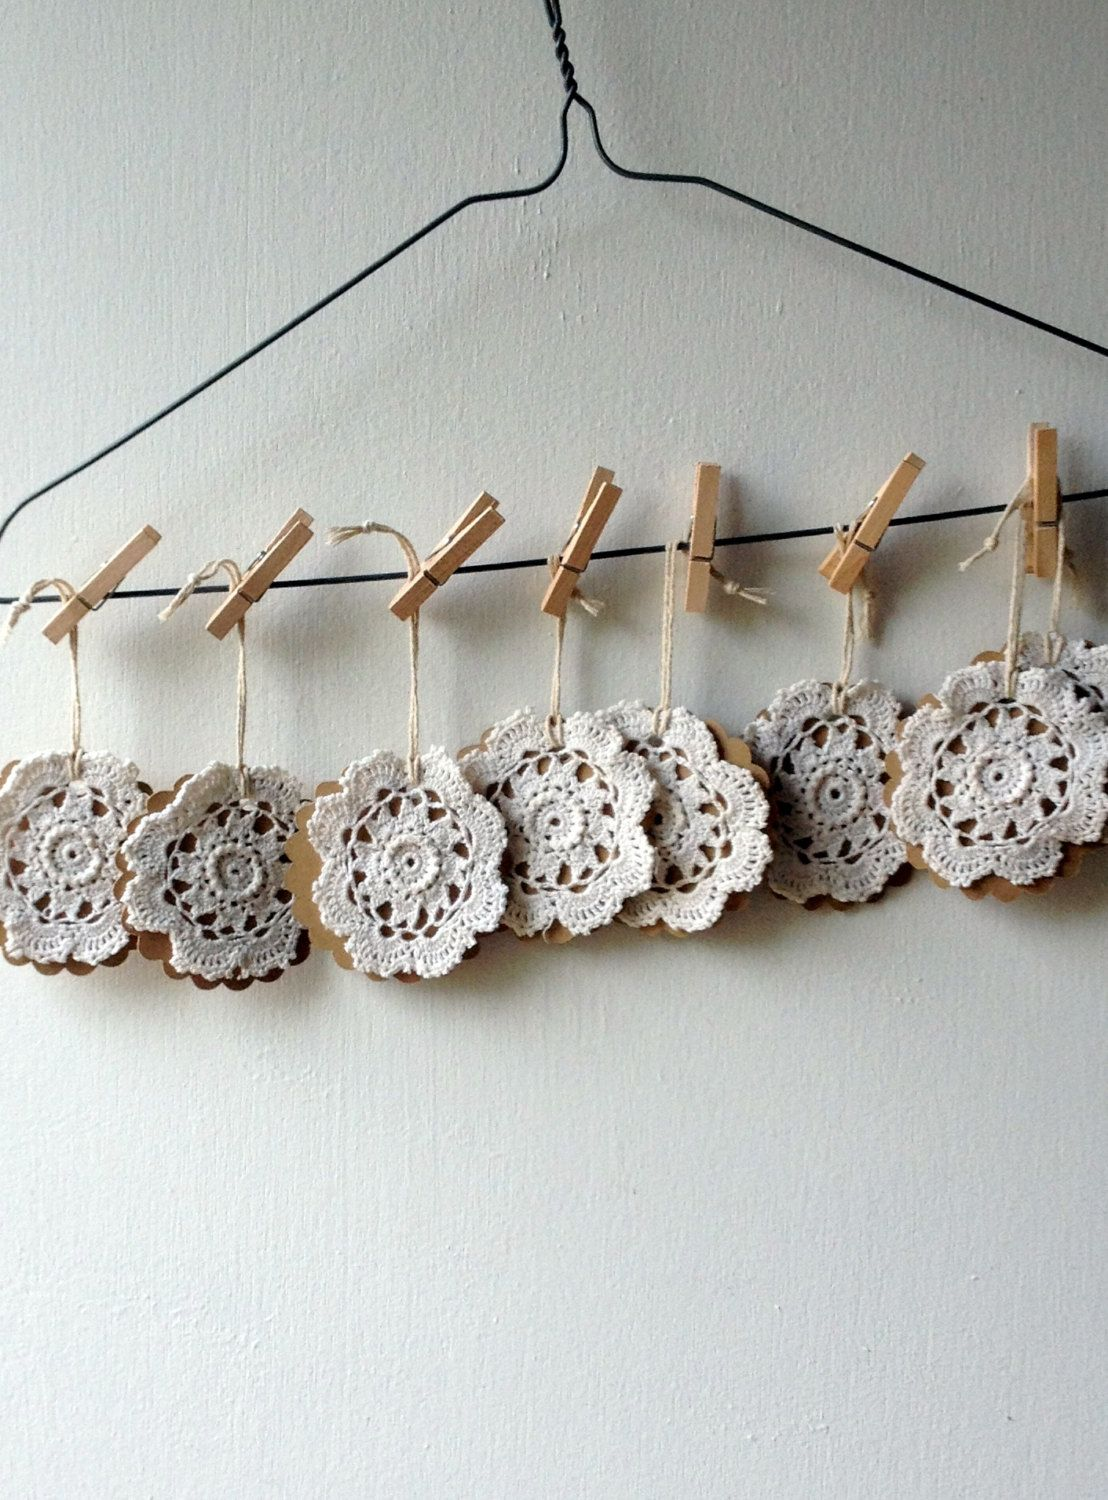 Gifts Tags with Vintage Doilies. $8.00, via Etsy.